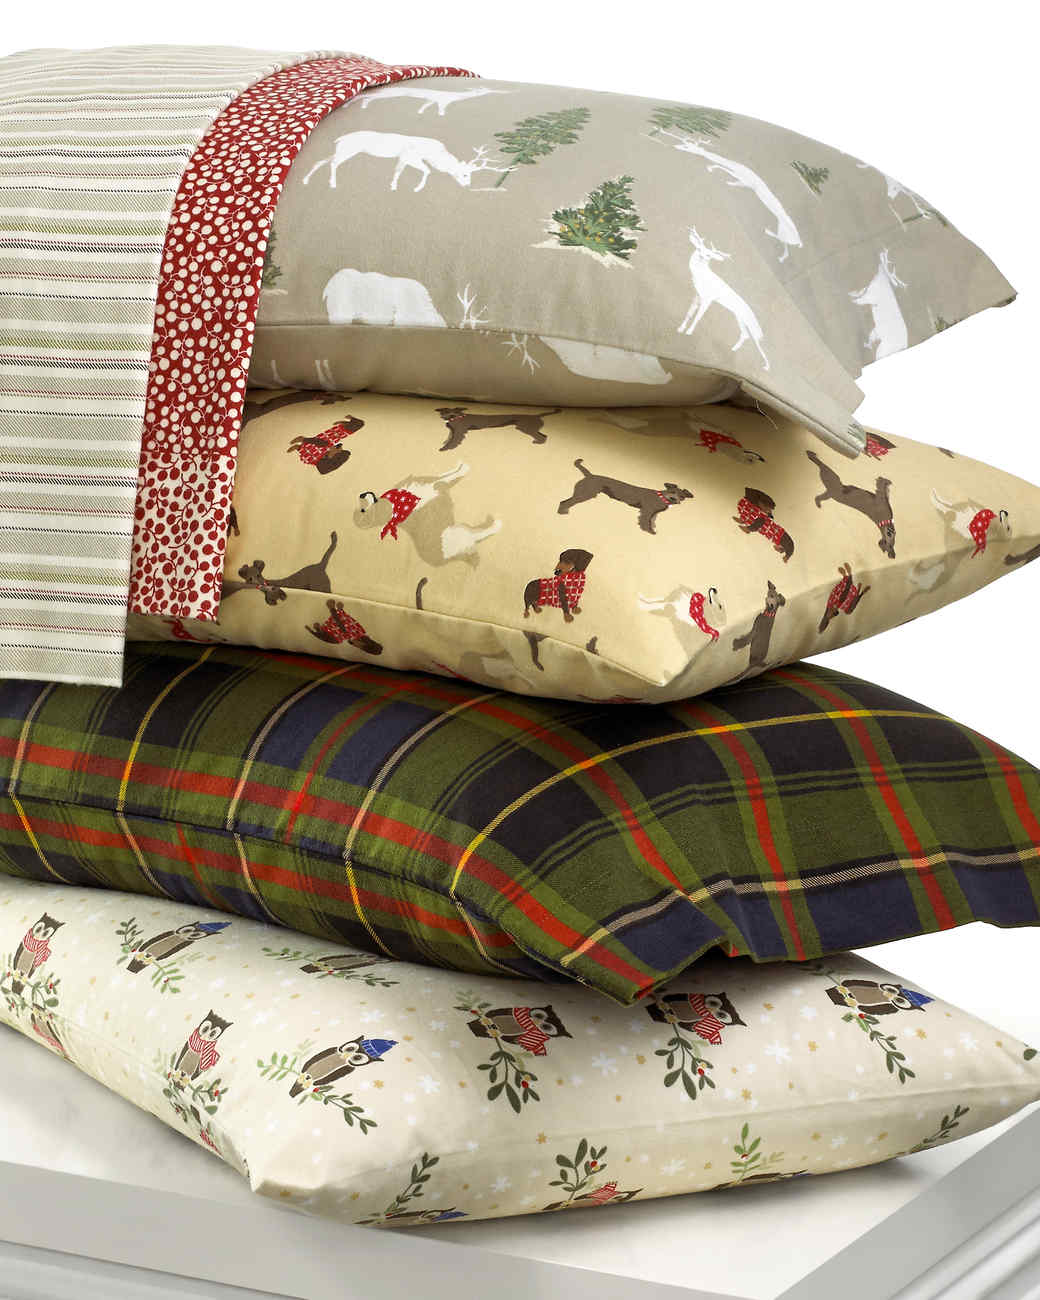 msmacys-holiday-flannelbedding-mrkt-1113.jpg